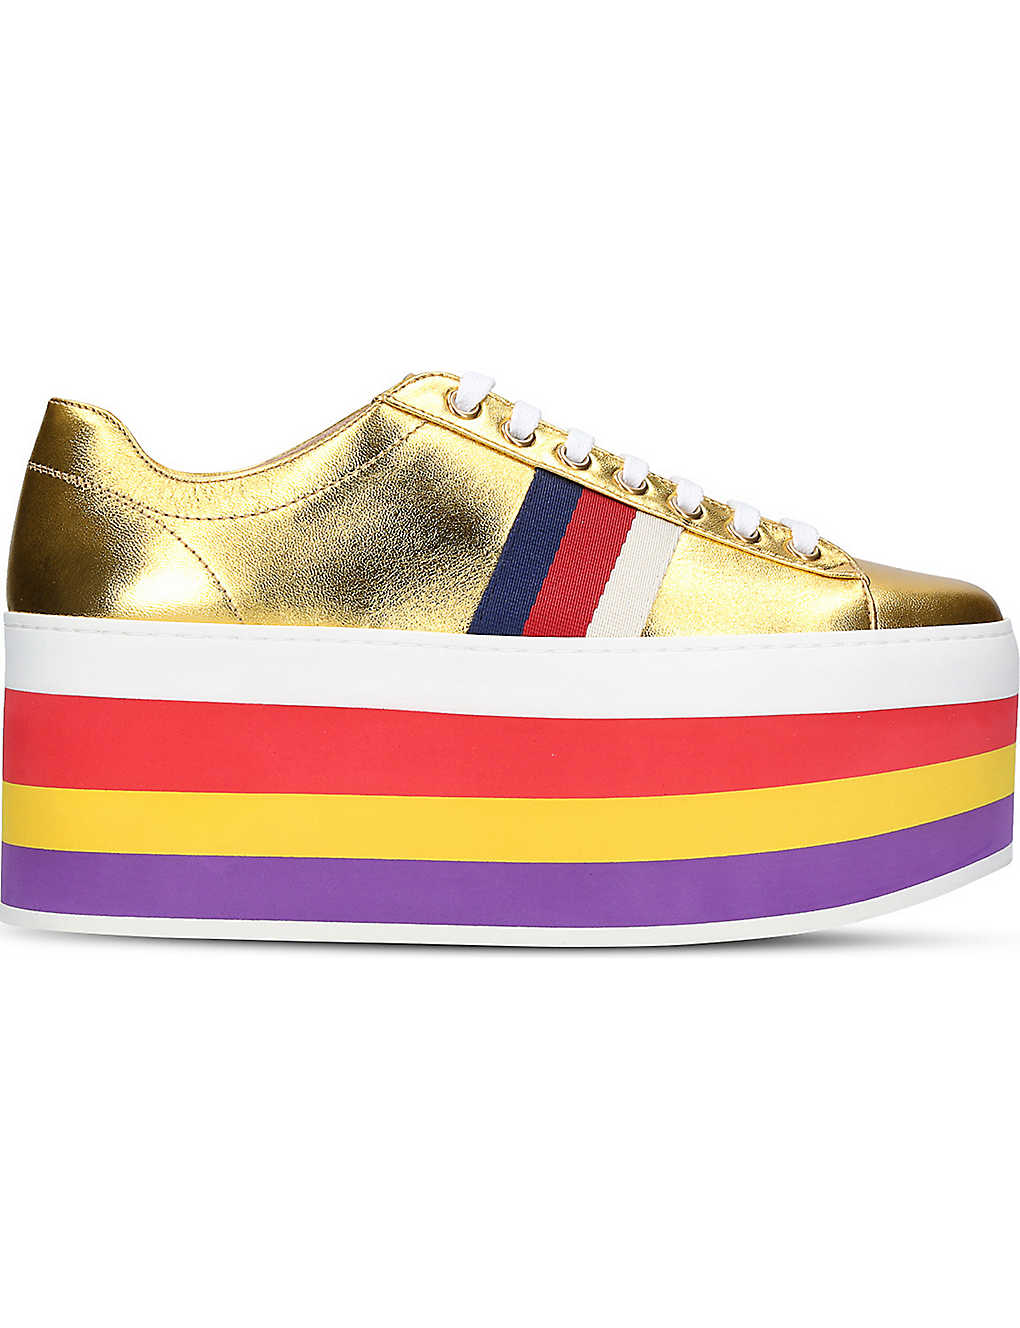 400ac52bbaa2 GUCCI - Peggy leather platform sneakers